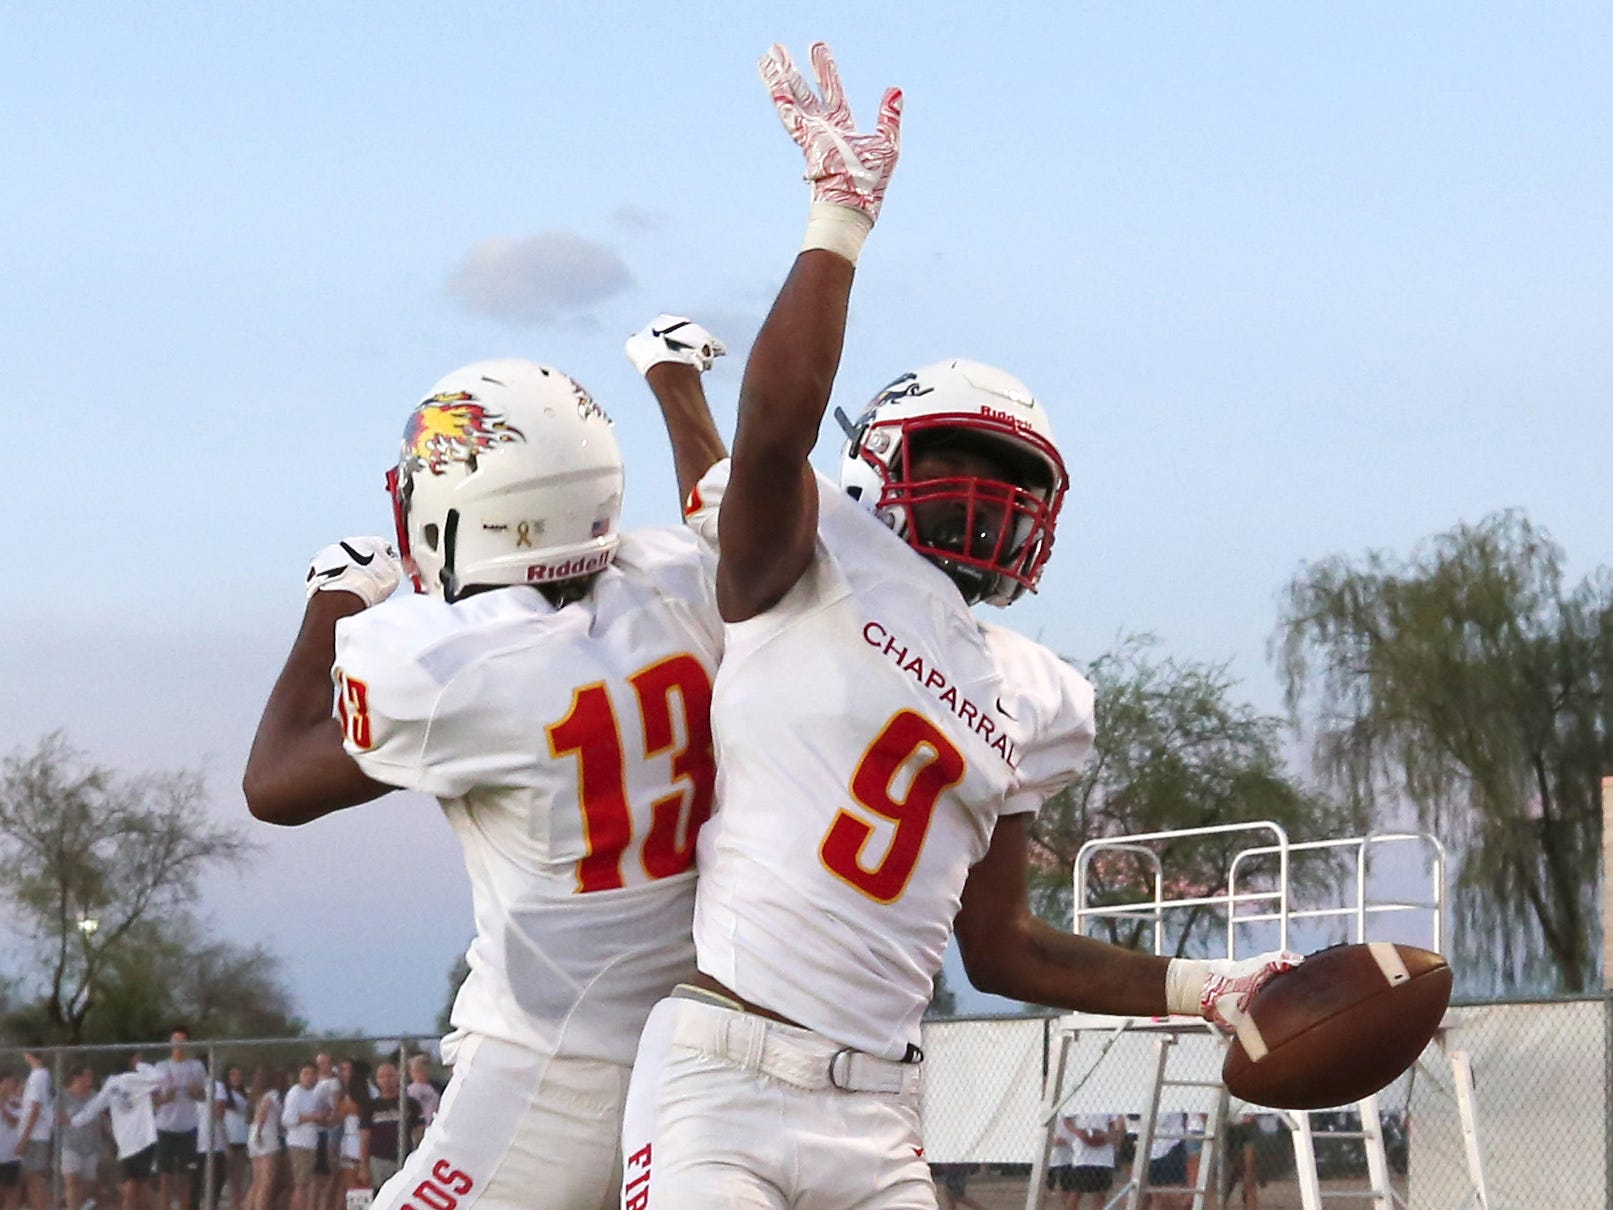 Chaparral Deavon Crawford (9) celebrates his touchdown with teammate Marcus Norvell II (13) during a high school football gameagainst the Hamilton at Hamilton in Chandler on August 17, 2018. #hsfb